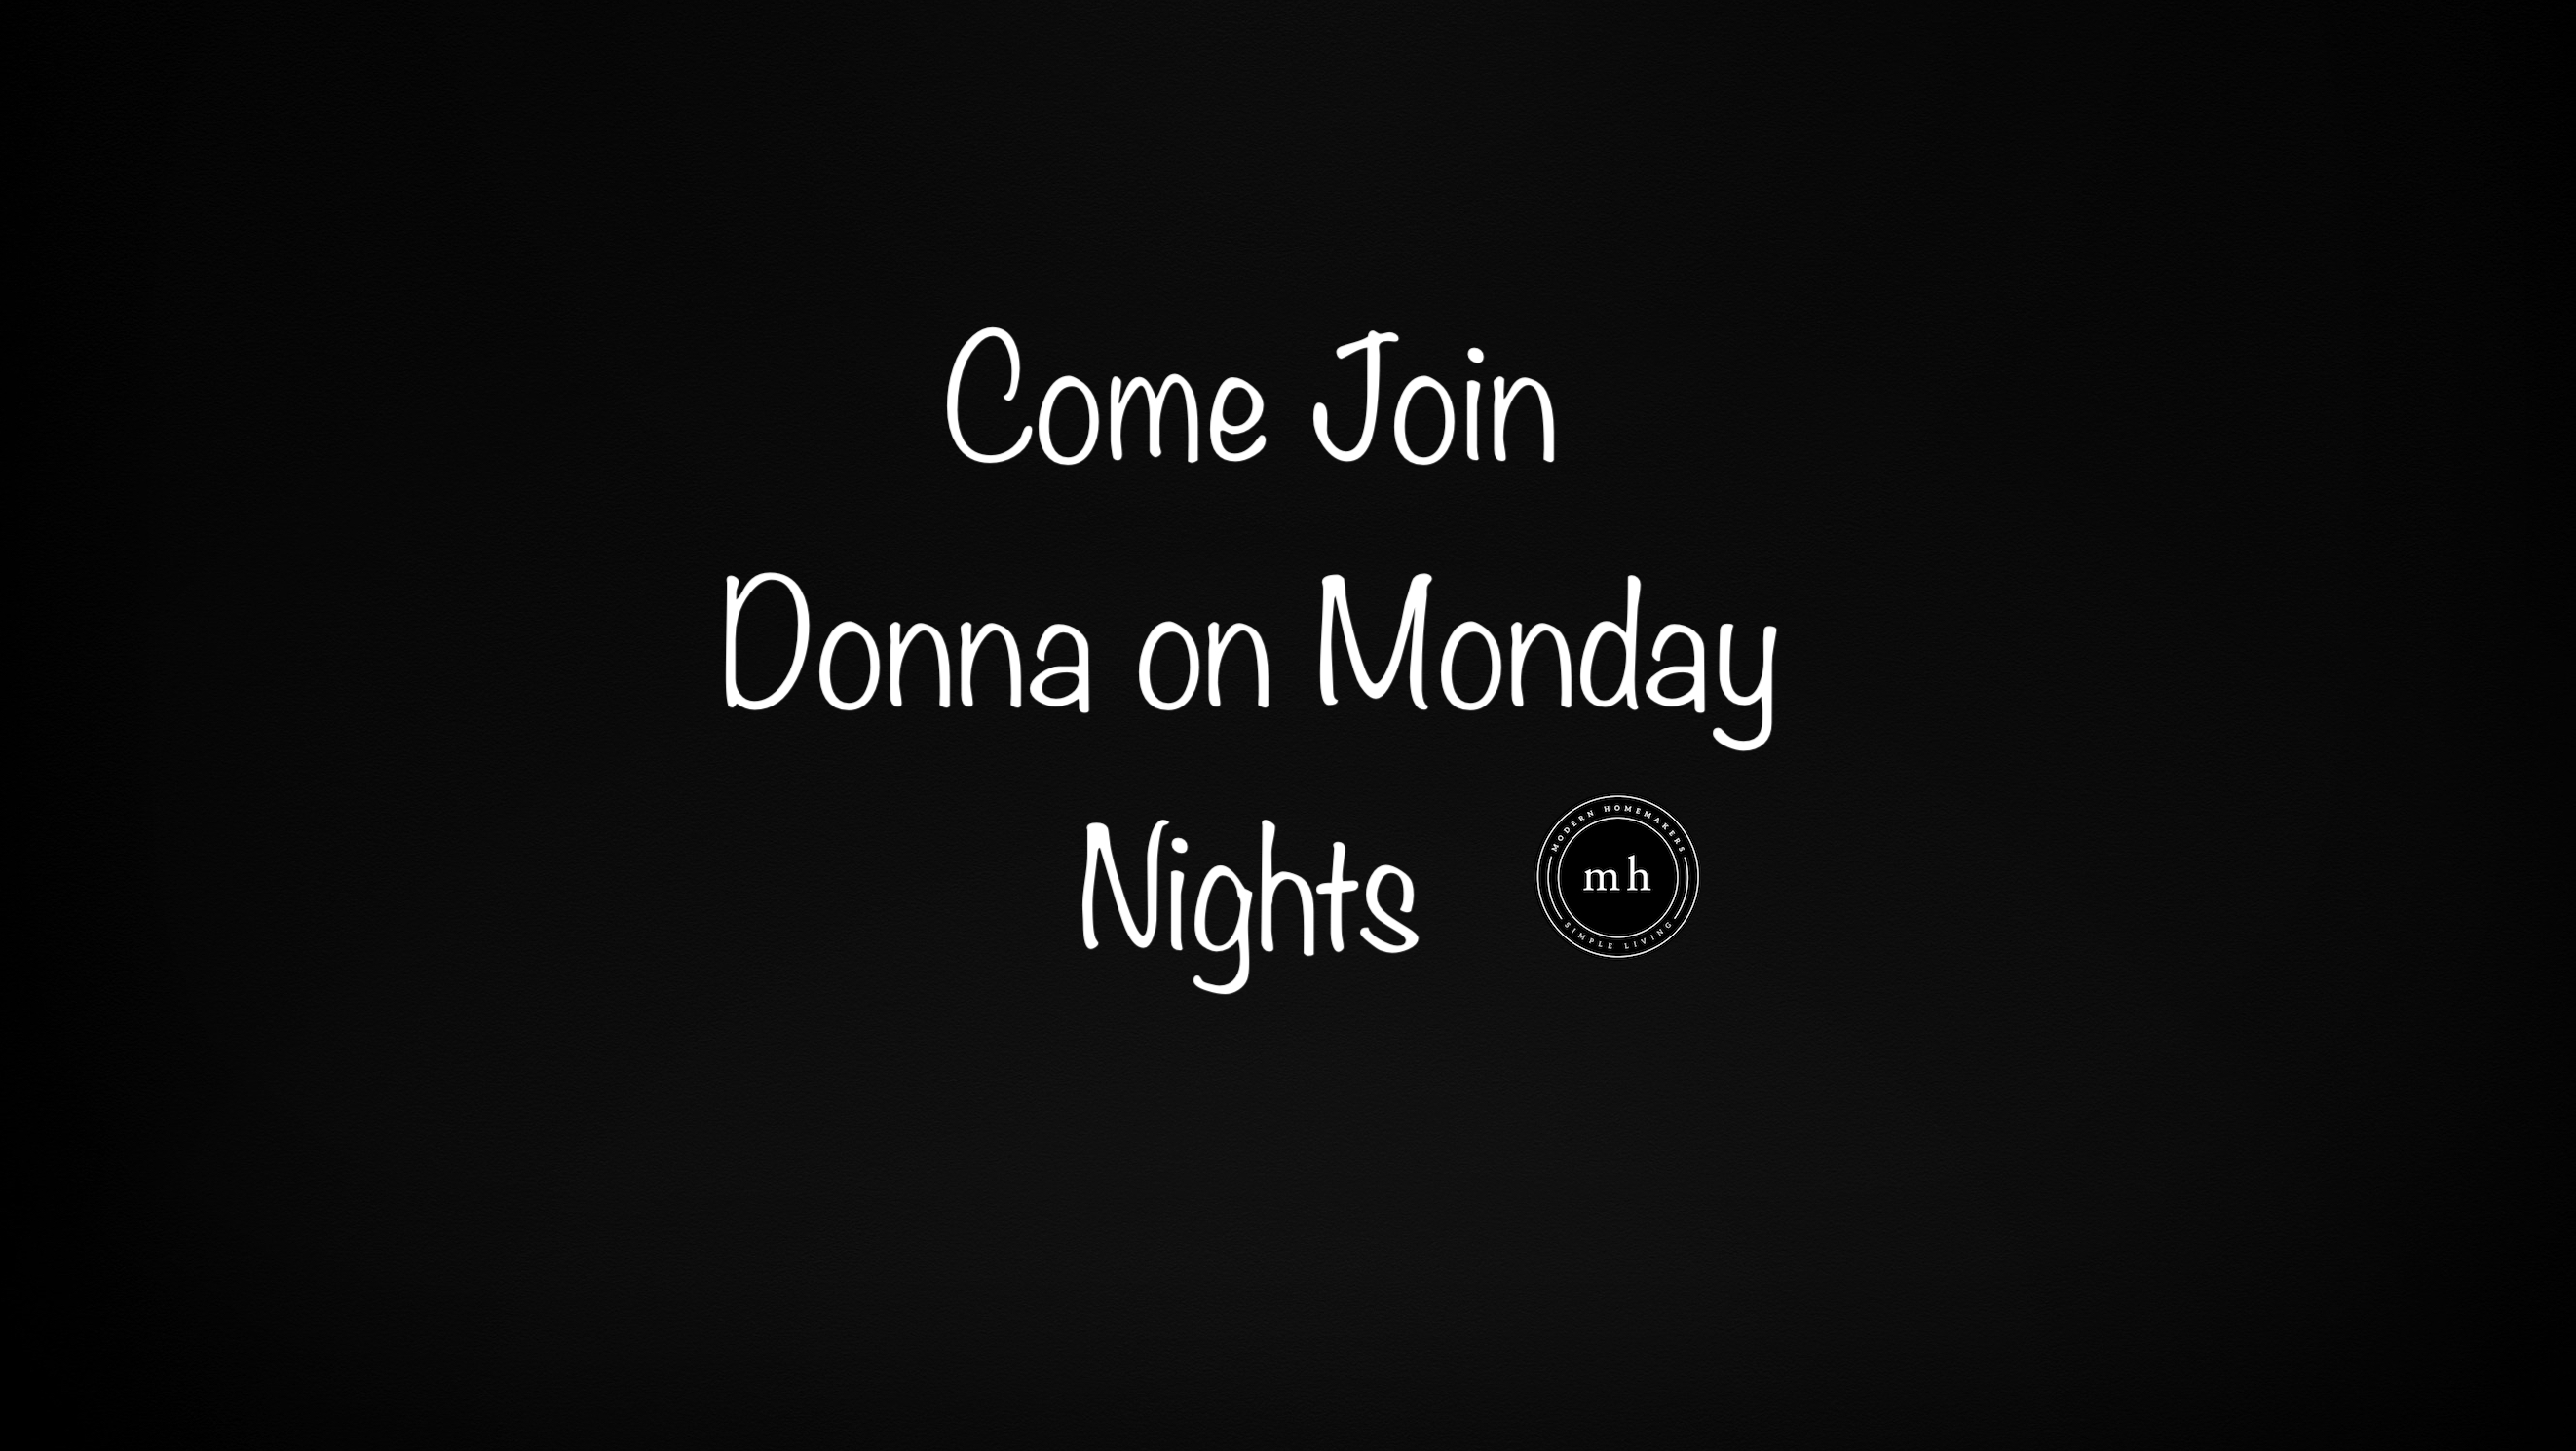 CHECK OUT DONNA's MONDAY NIGHT STUDY